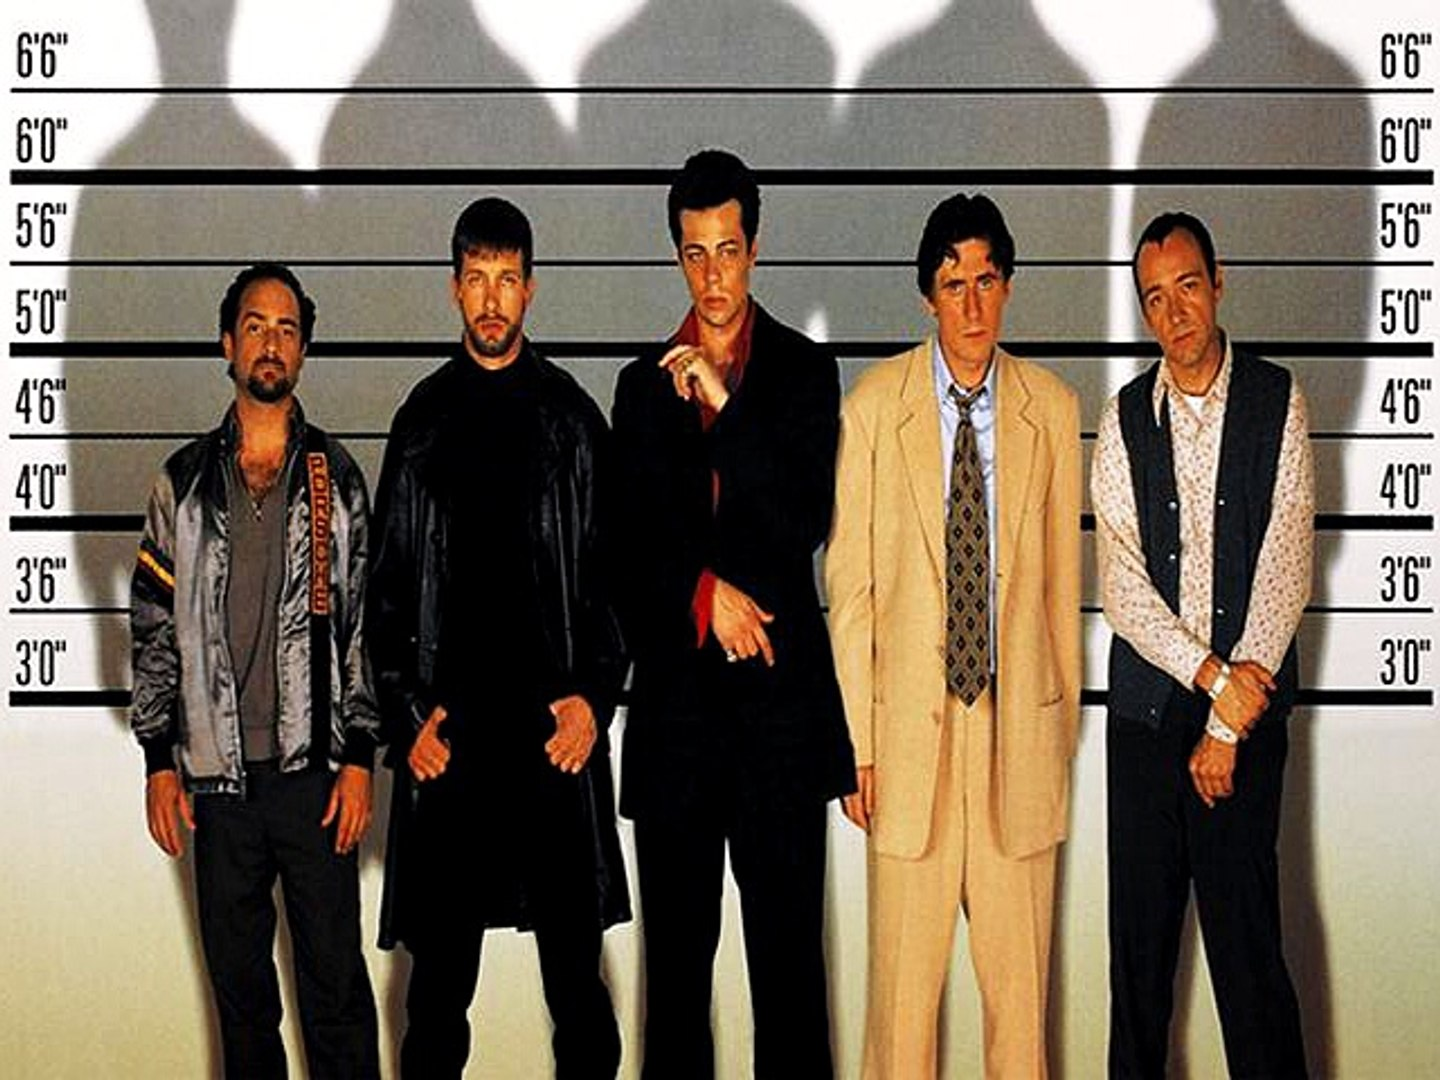 Download The Usual Suspects (1995) Full movie HD